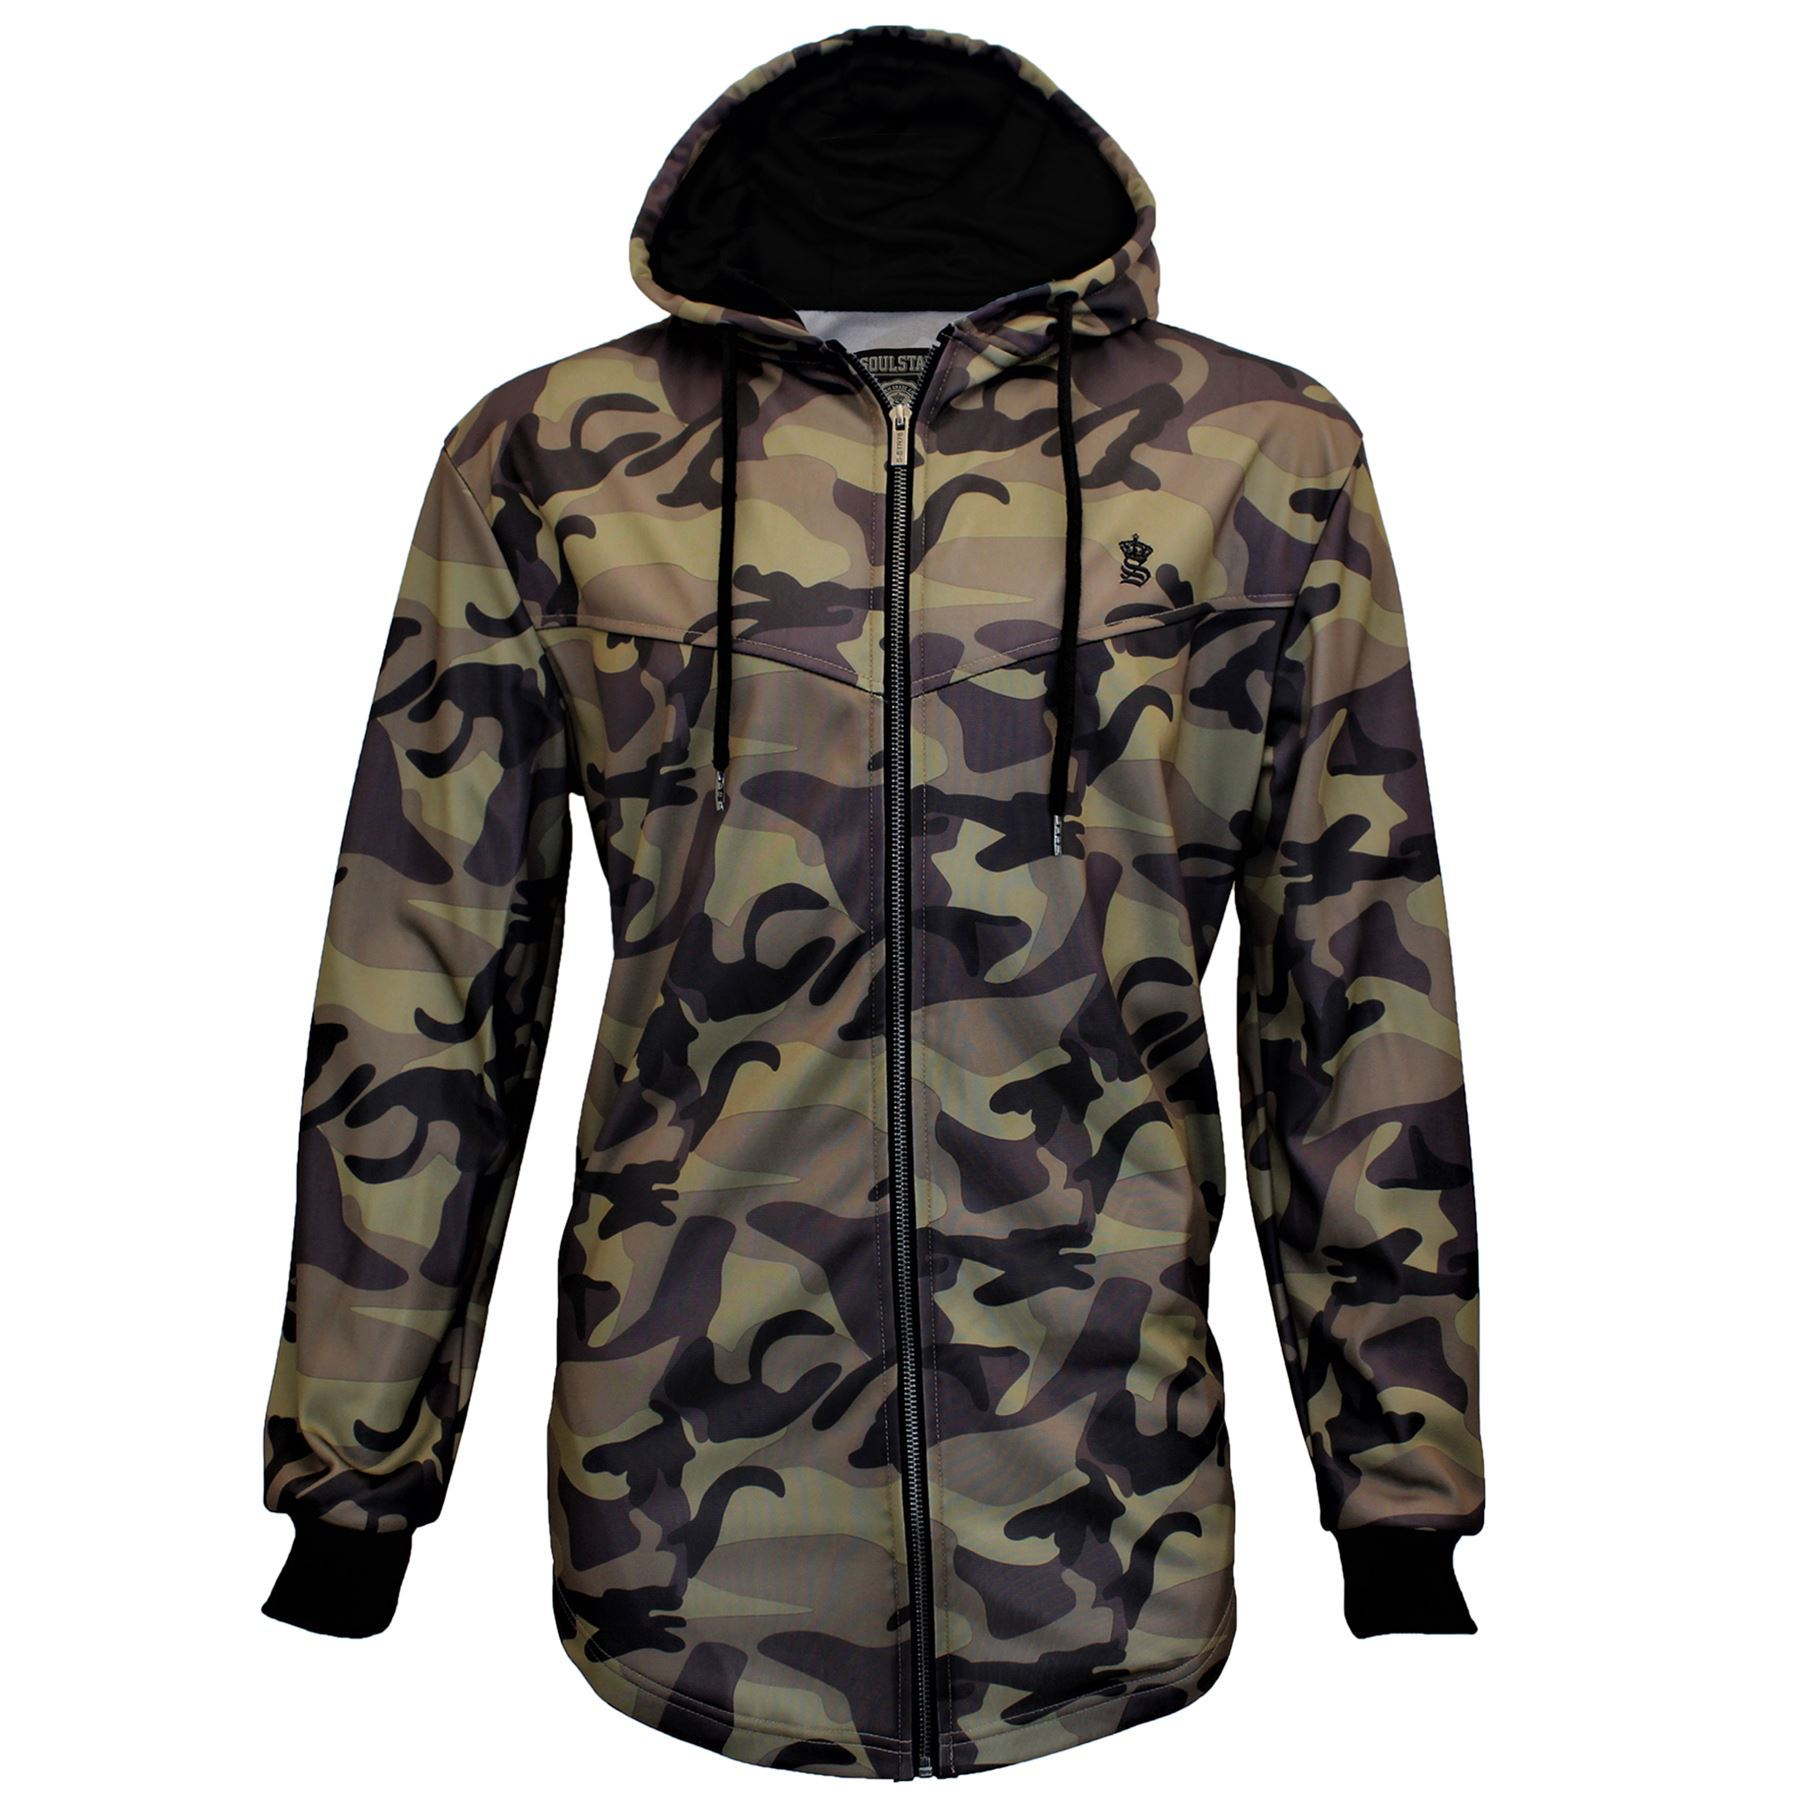 Mar 09,  · Our RedHead® Tech Fleece Hoodie for Men brings the ideal mid-layer in cold weather or a trusty and comfortable shell on cool days. Built of durable and comfortable a 98% polyester/2% spandex blend, this versatile camo hoodie feels and performs great in the woods or the back yard.5/5(1).